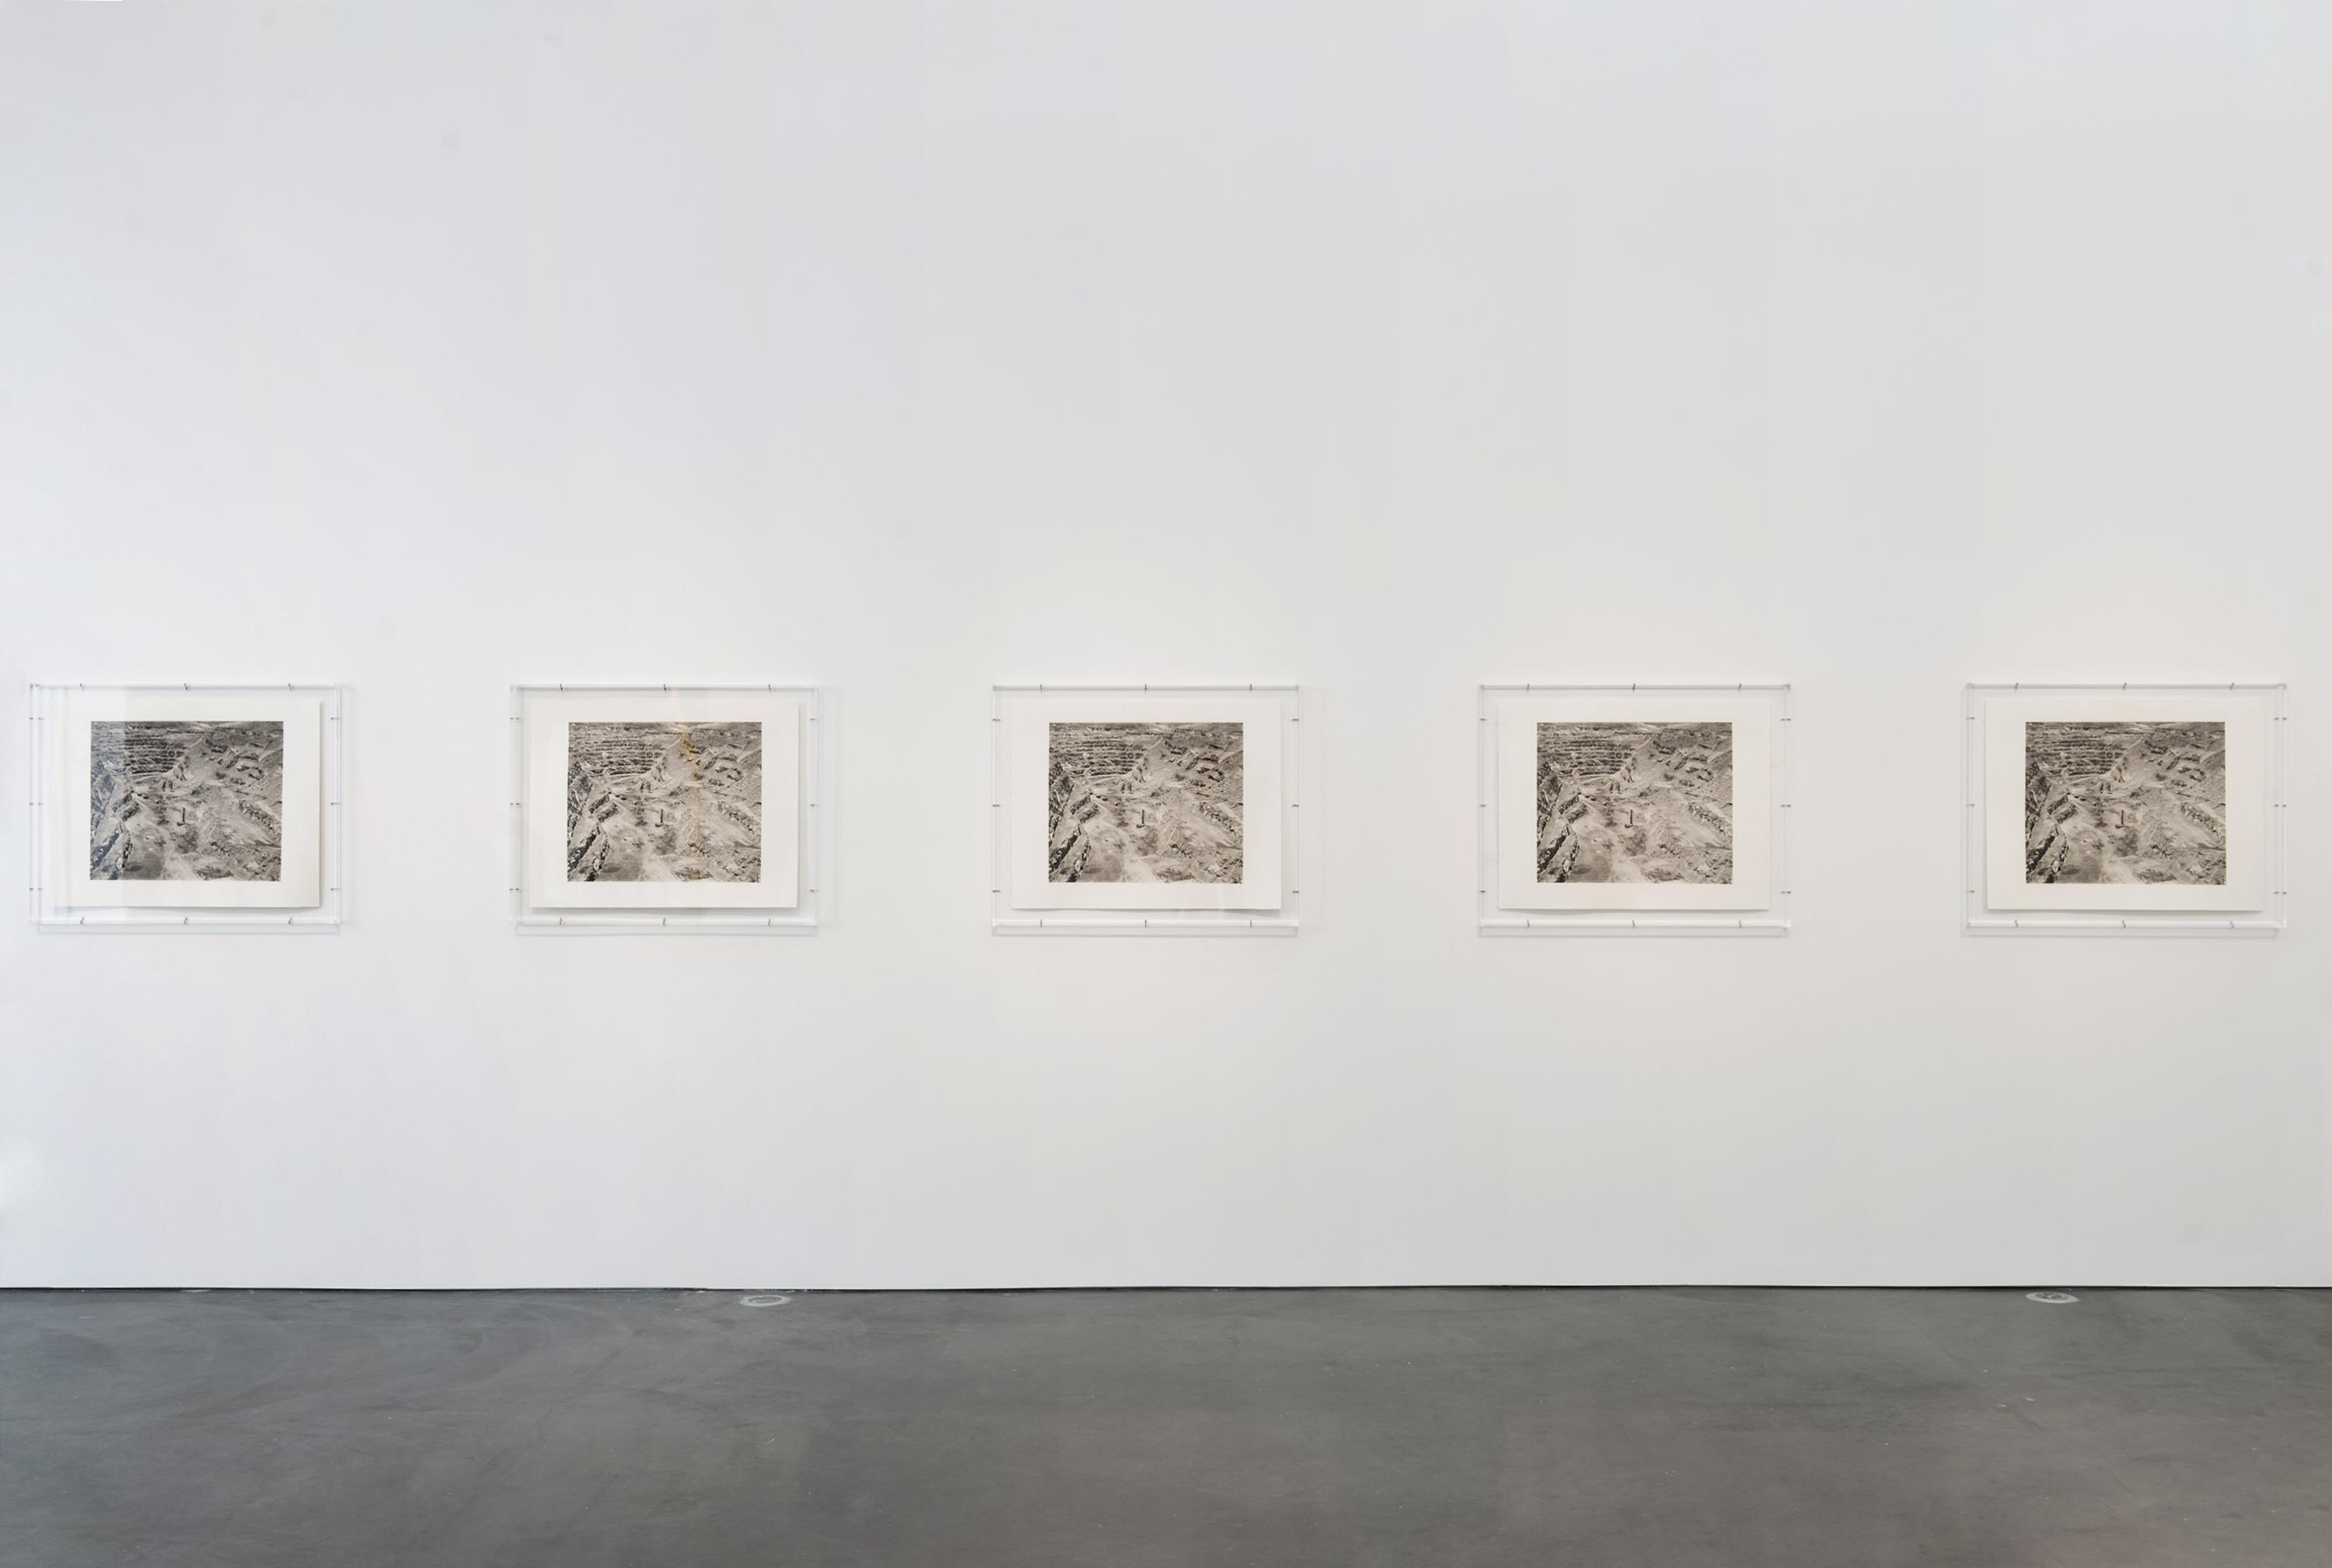 Five grayscale rectangular photographs hang in a horizontal line on a white gallery wall.